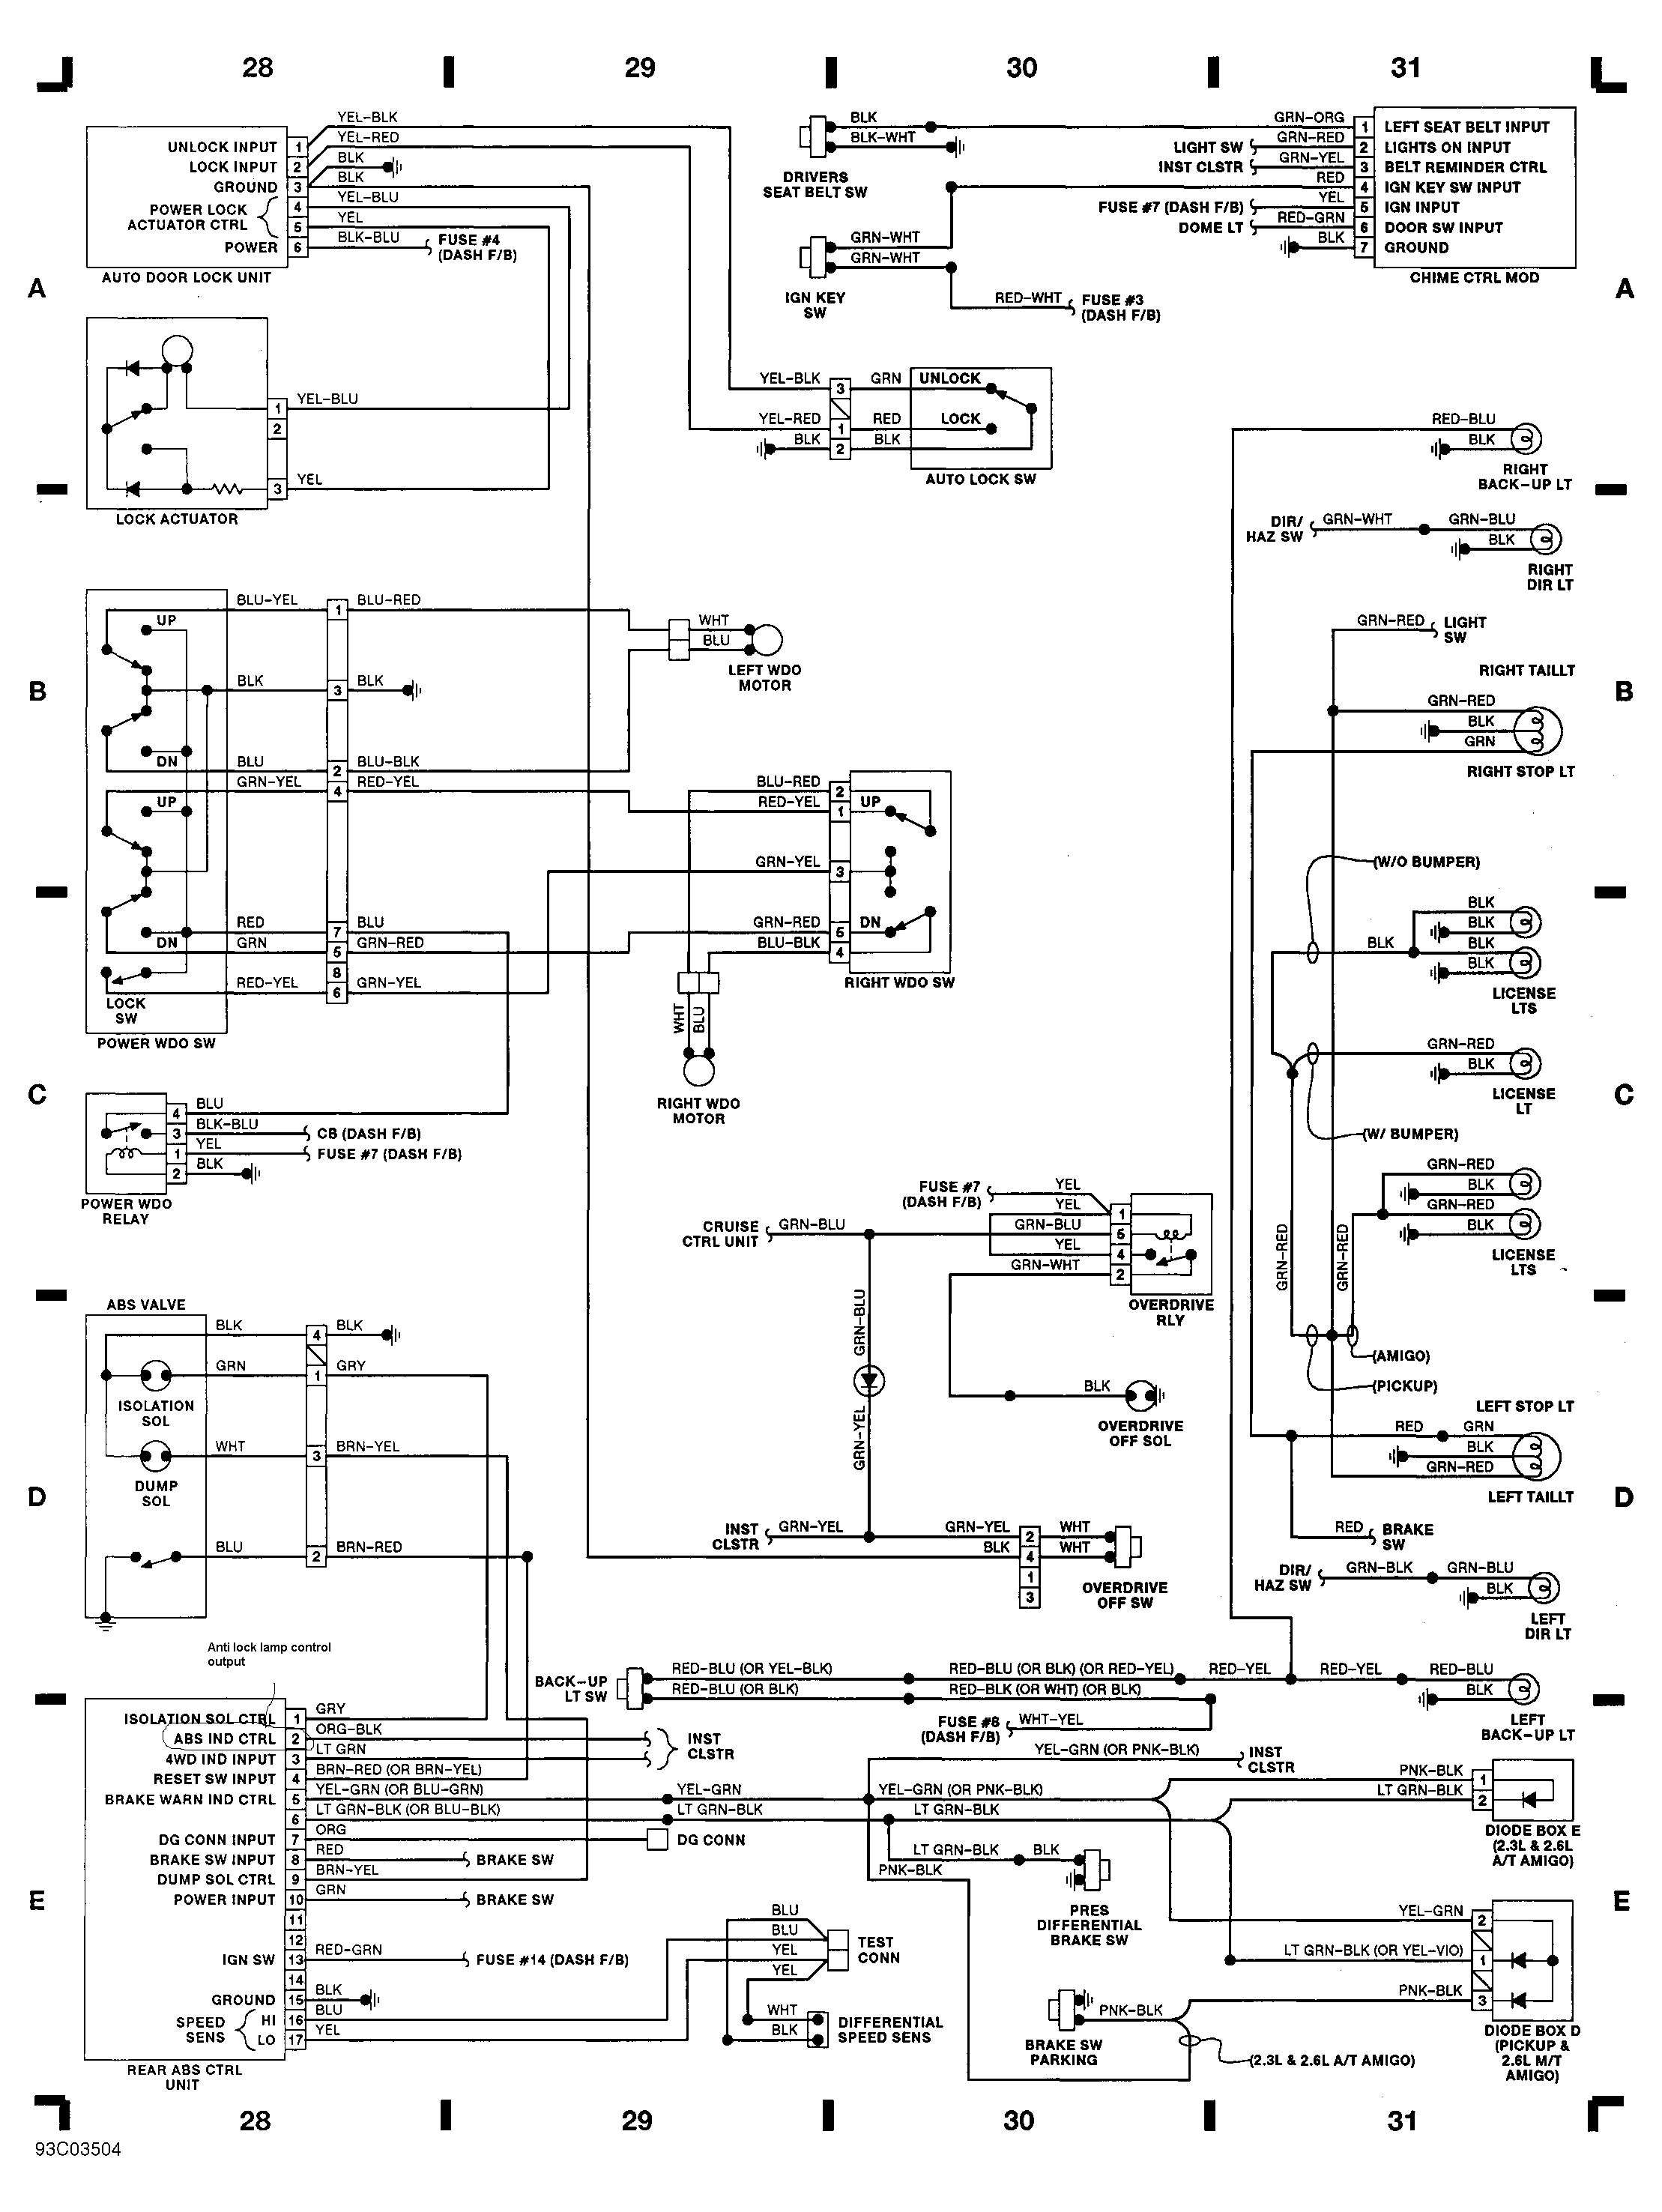 Toyota Wiring Diagrams 01 charts,free diagram images